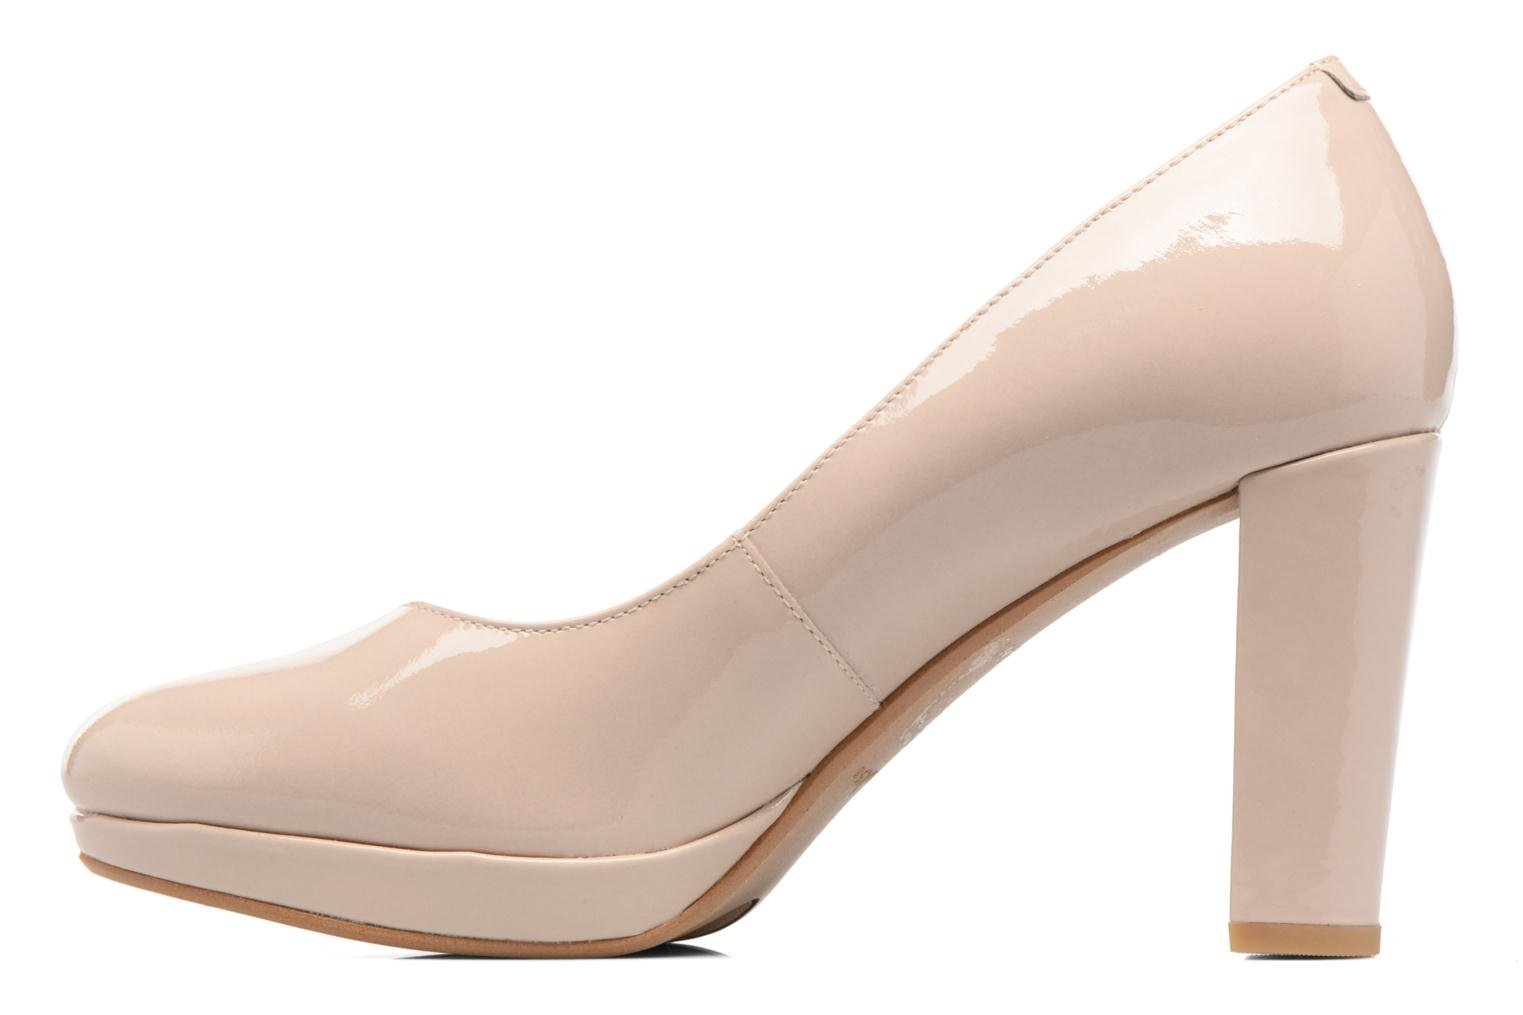 Kendra Sienna Nude patent